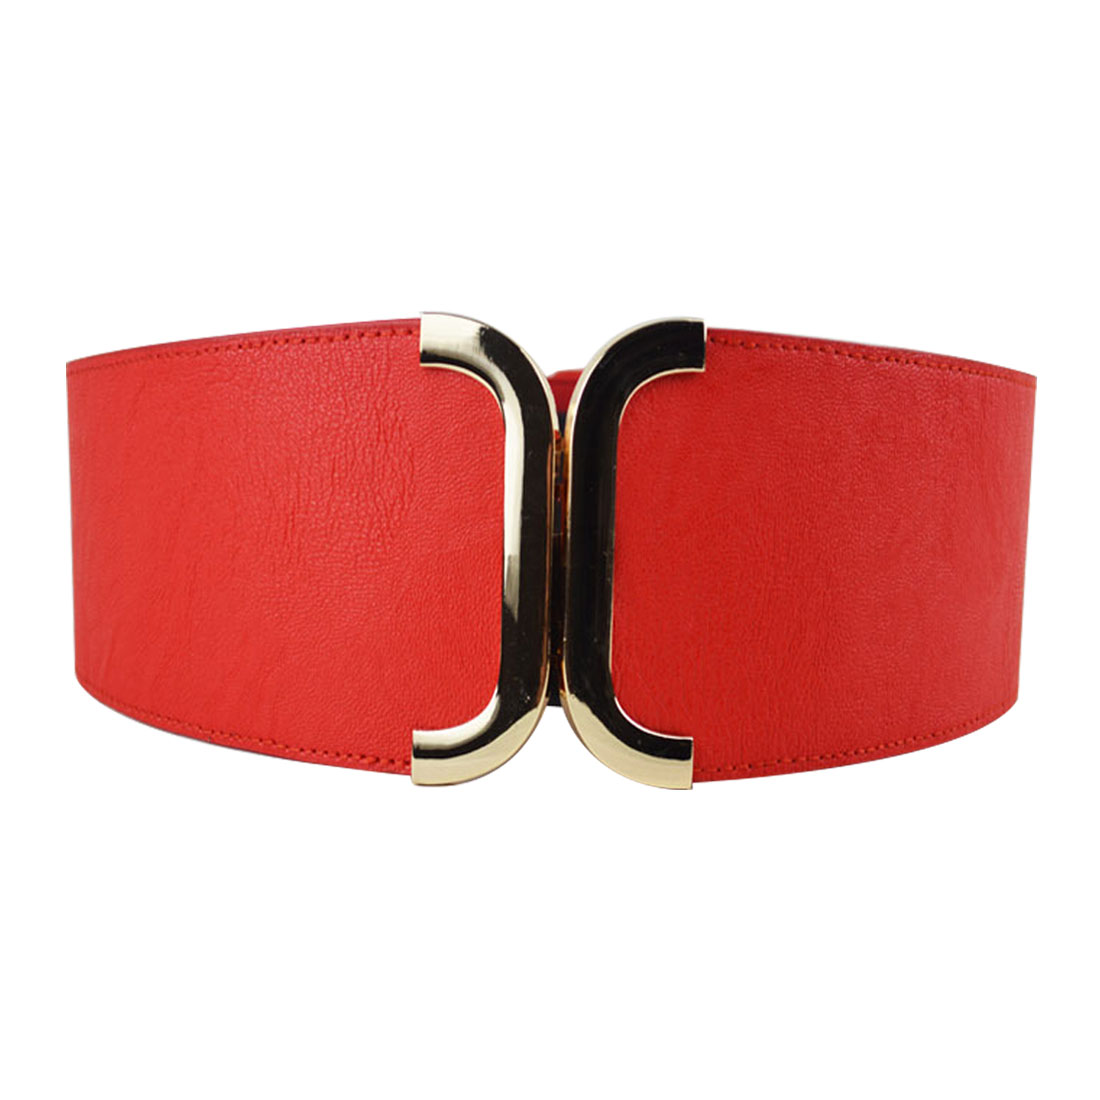 Top Sell Women Brief Belt Female Wide Belt Decoration Elastic Fashion Cummerbund Strap All-Match Lady'S Waist Belts For Women